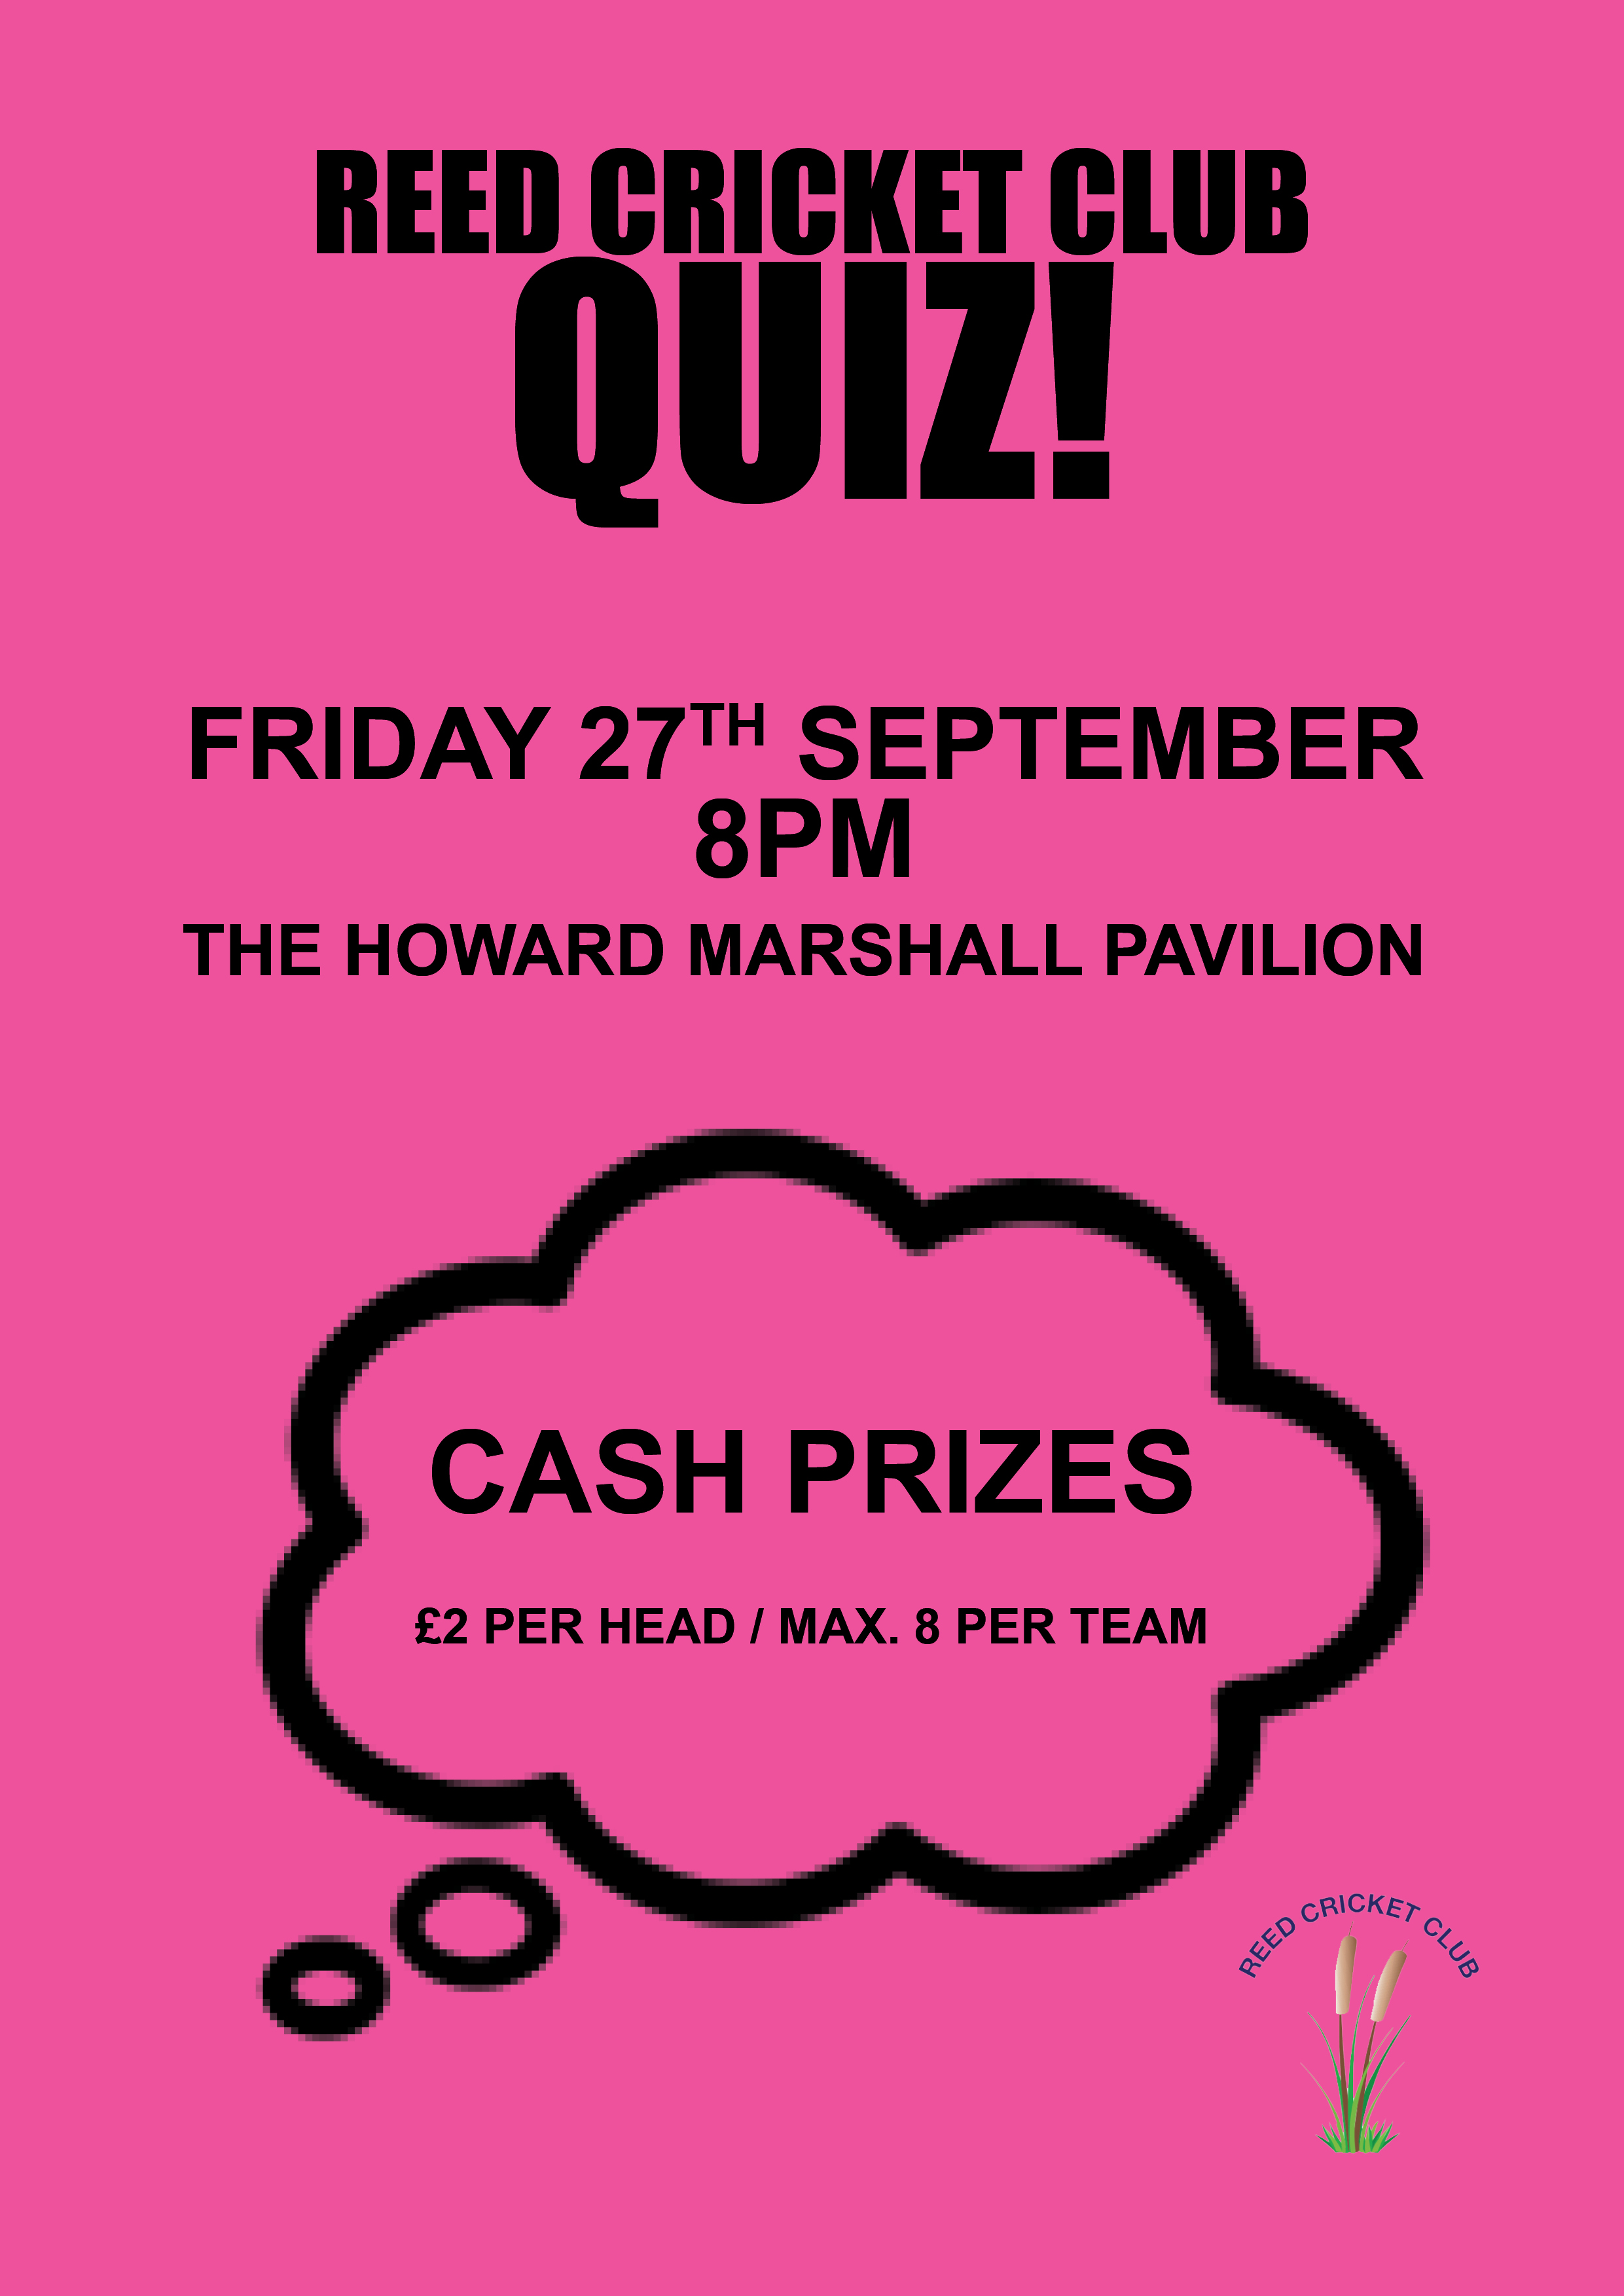 RCC September Quiz, Friday the 27th